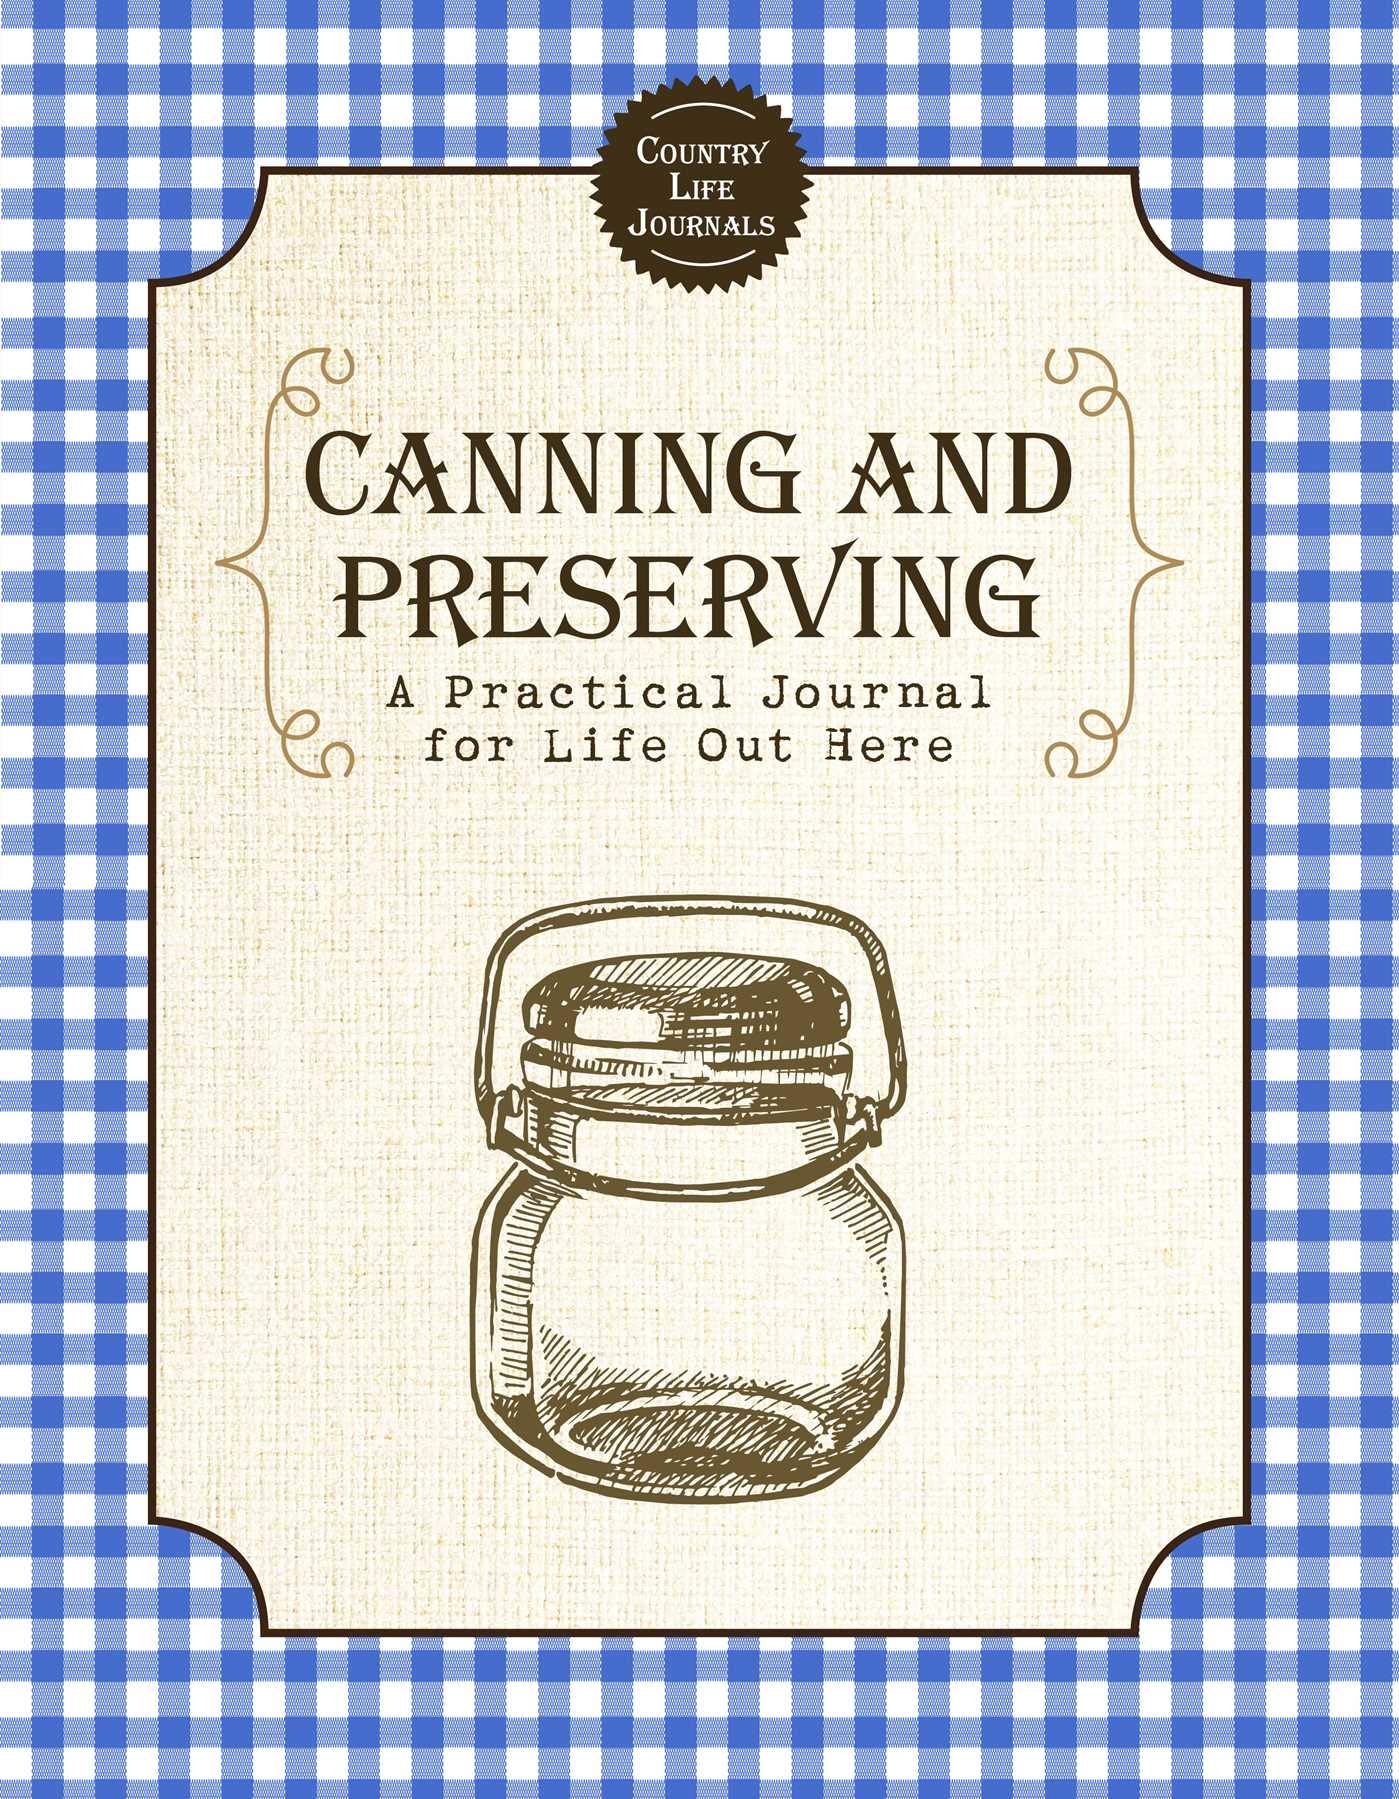 Image OfCanning And Preserving: A Practical Journal For Life Out Here